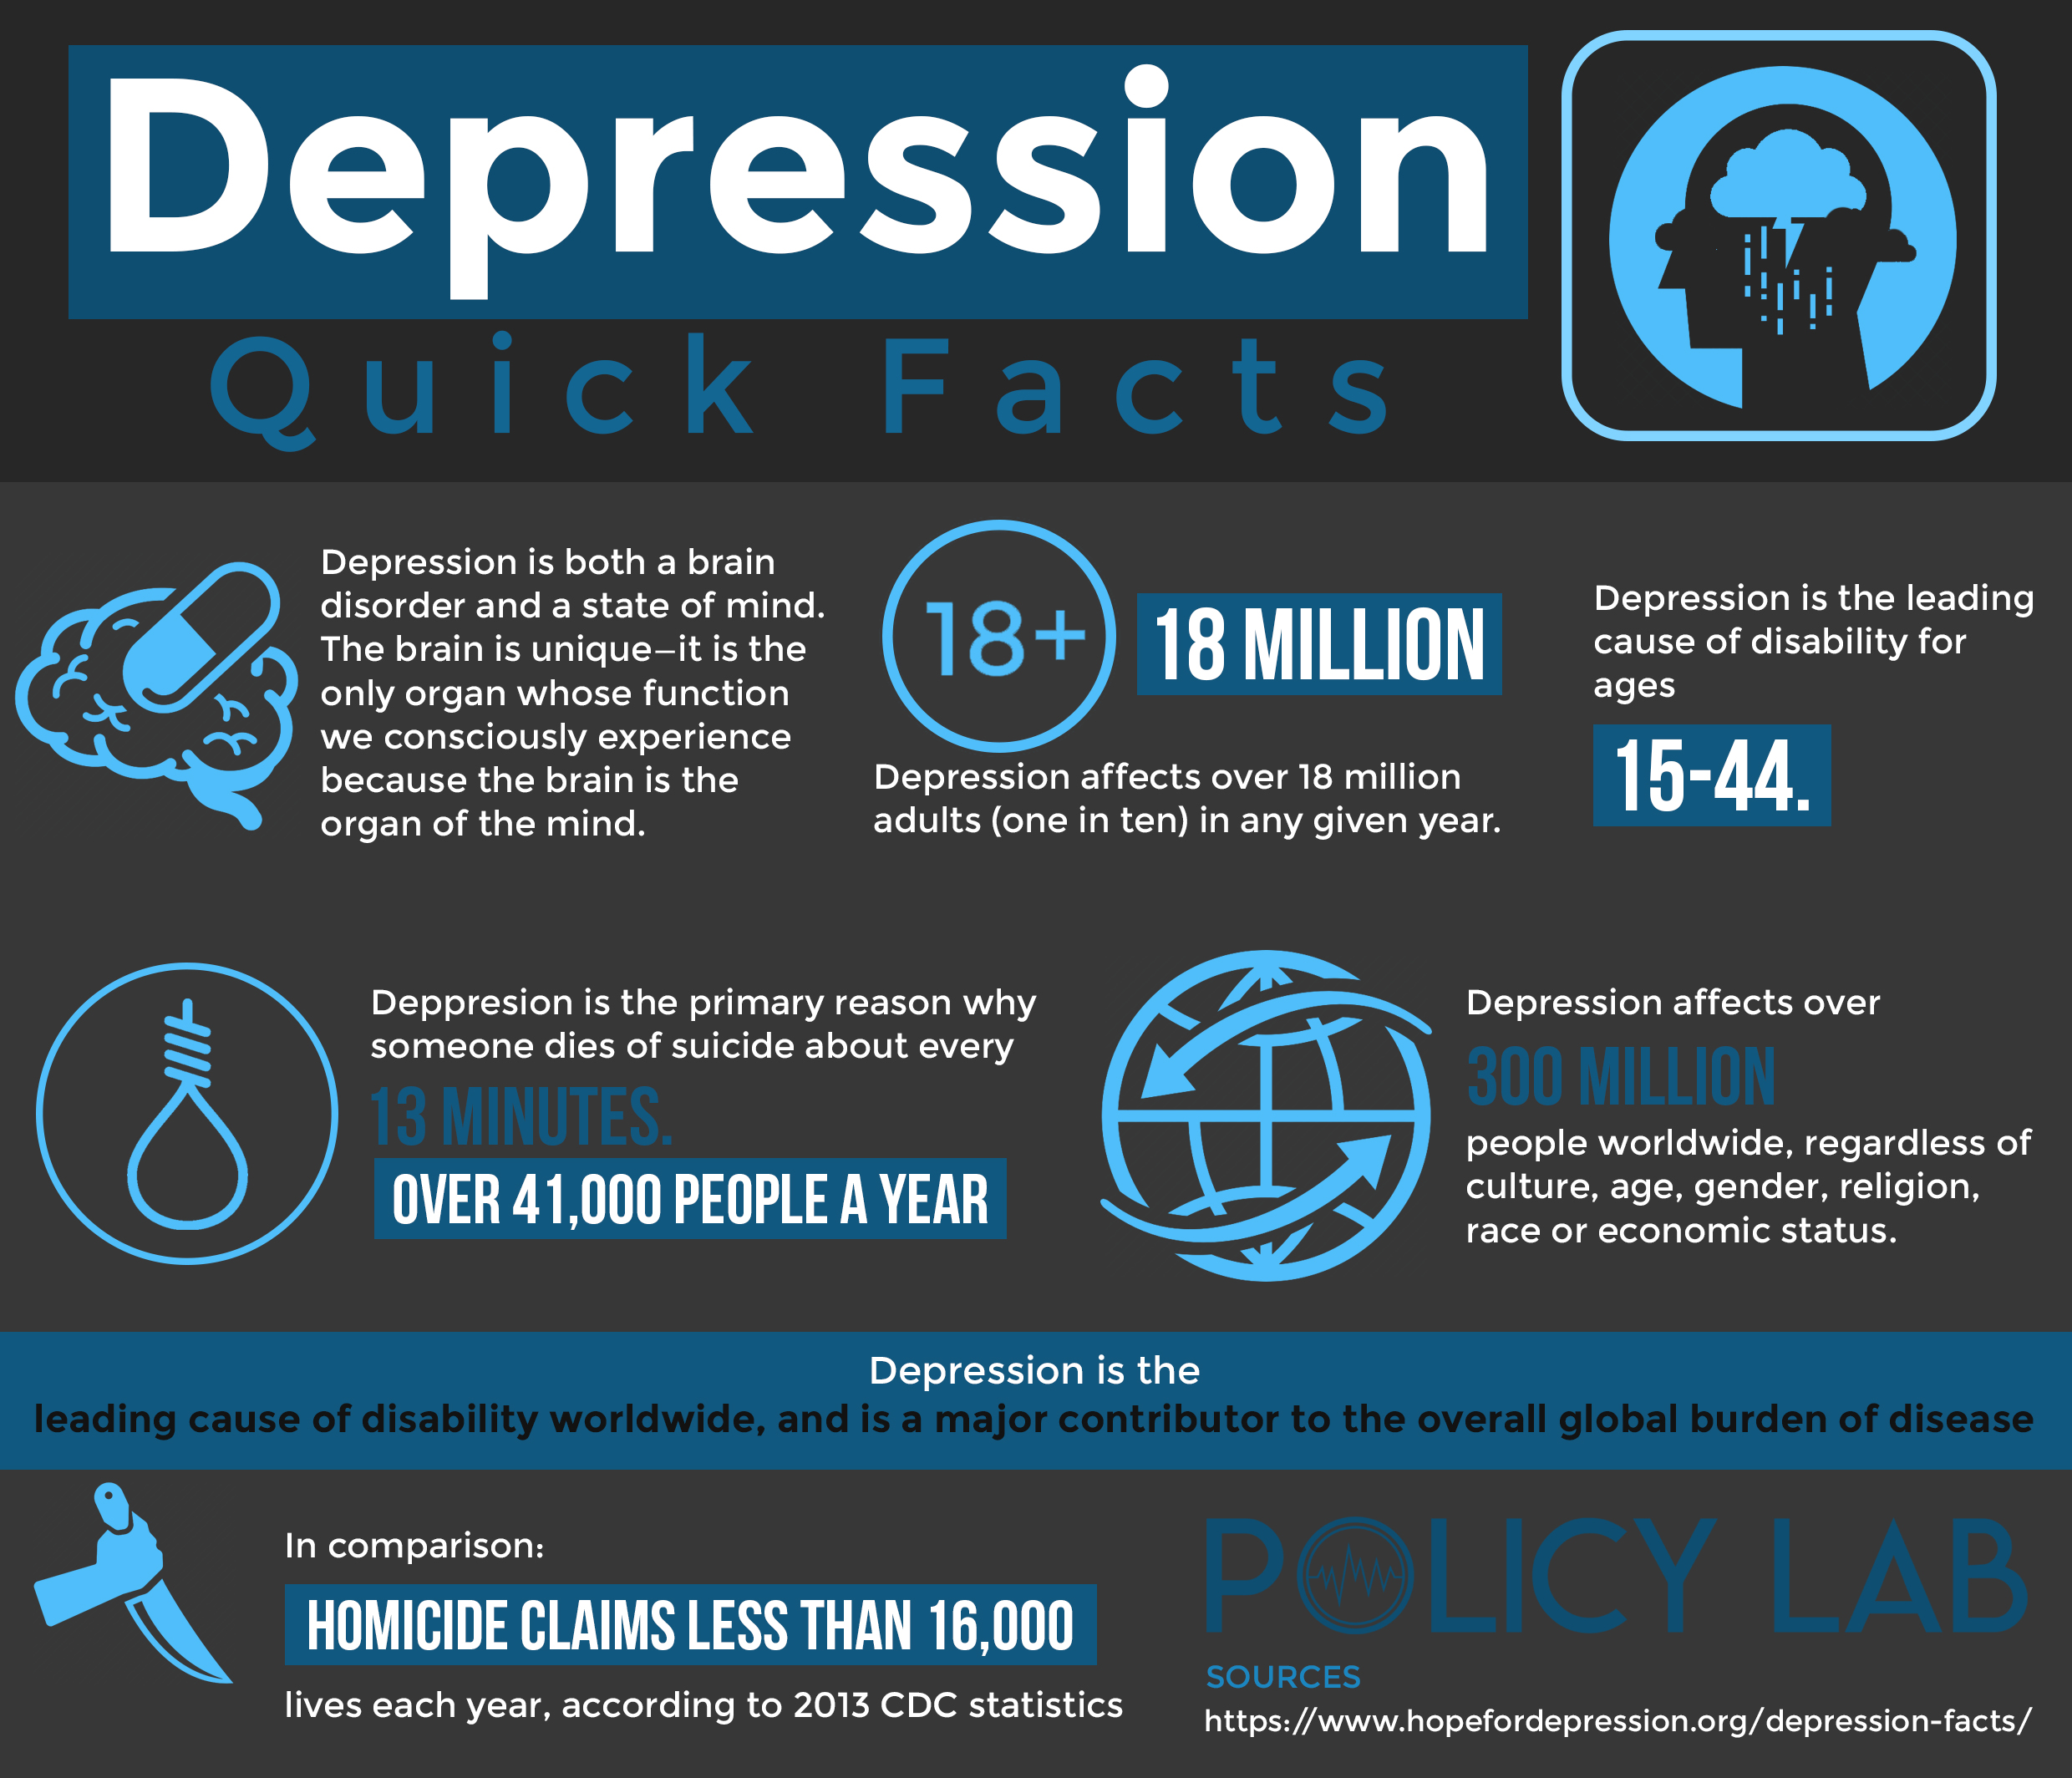 Depression Clinical Trials And Research Guide